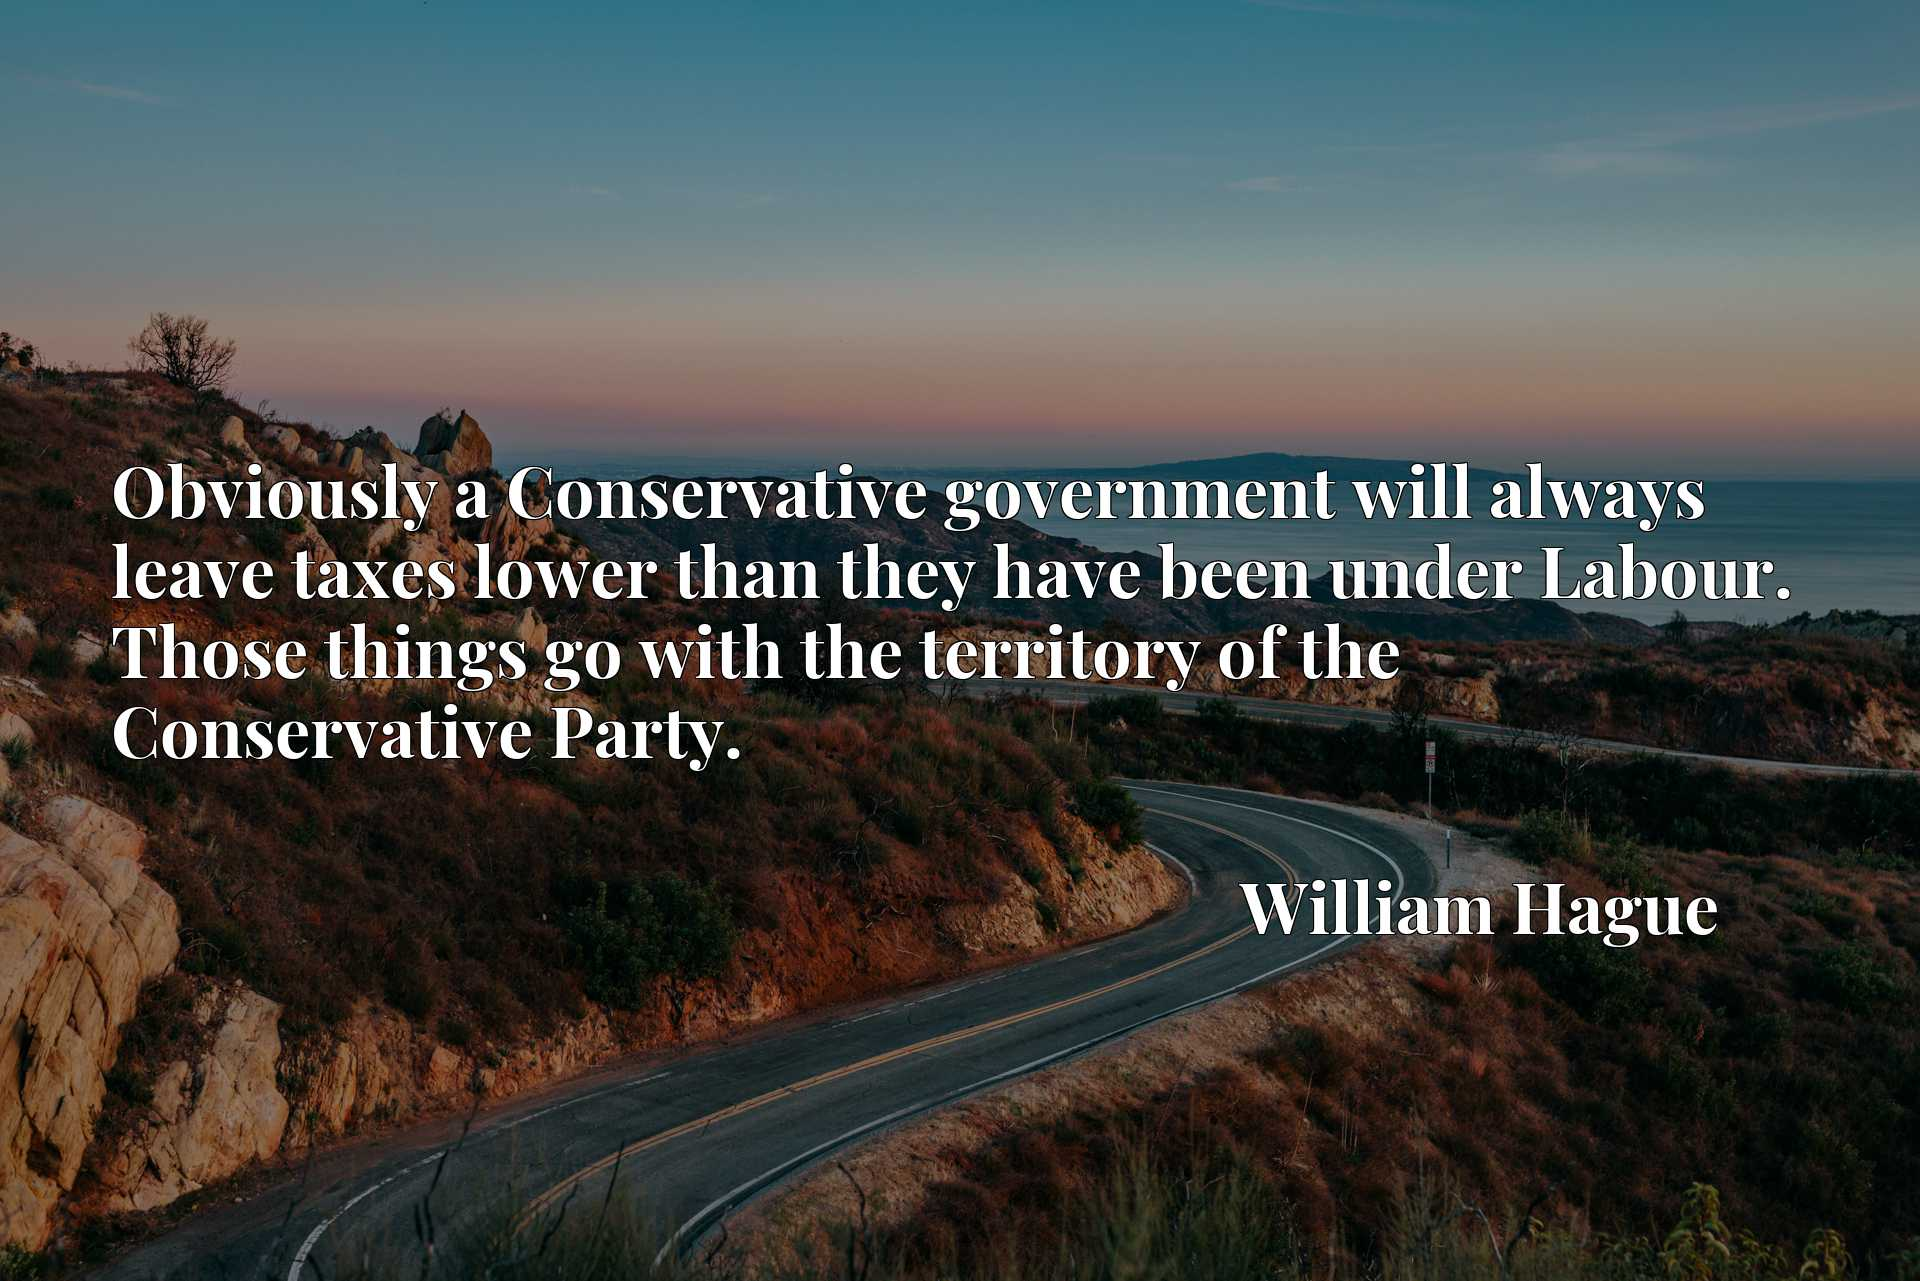 Obviously a Conservative government will always leave taxes lower than they have been under Labour. Those things go with the territory of the Conservative Party.